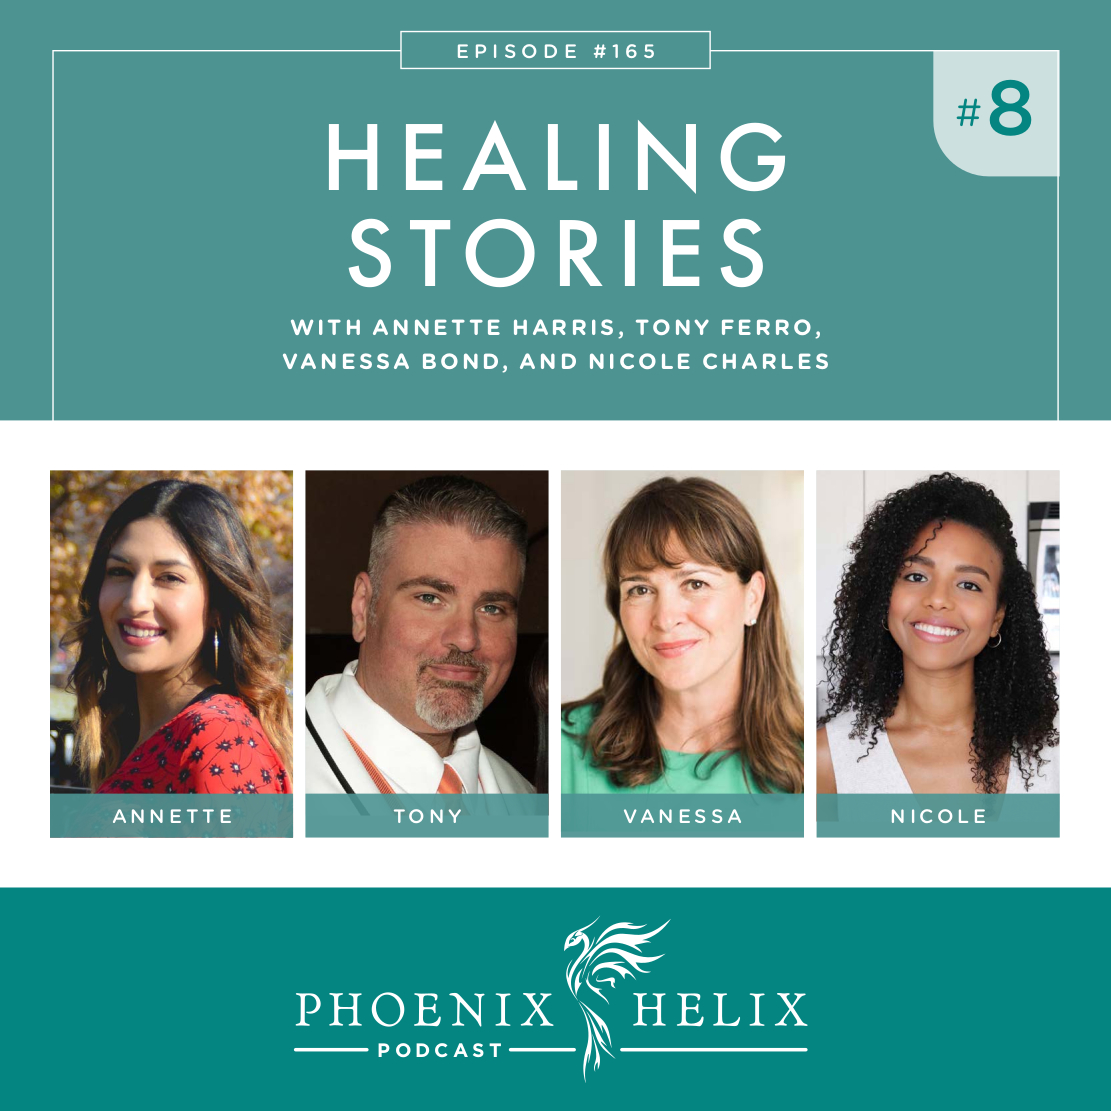 Healing Stories 8 | Phoenix Helix Podcast (Ulcerative Colitis, Multiple Sclerosis, CRMO, and Graves' Disease)